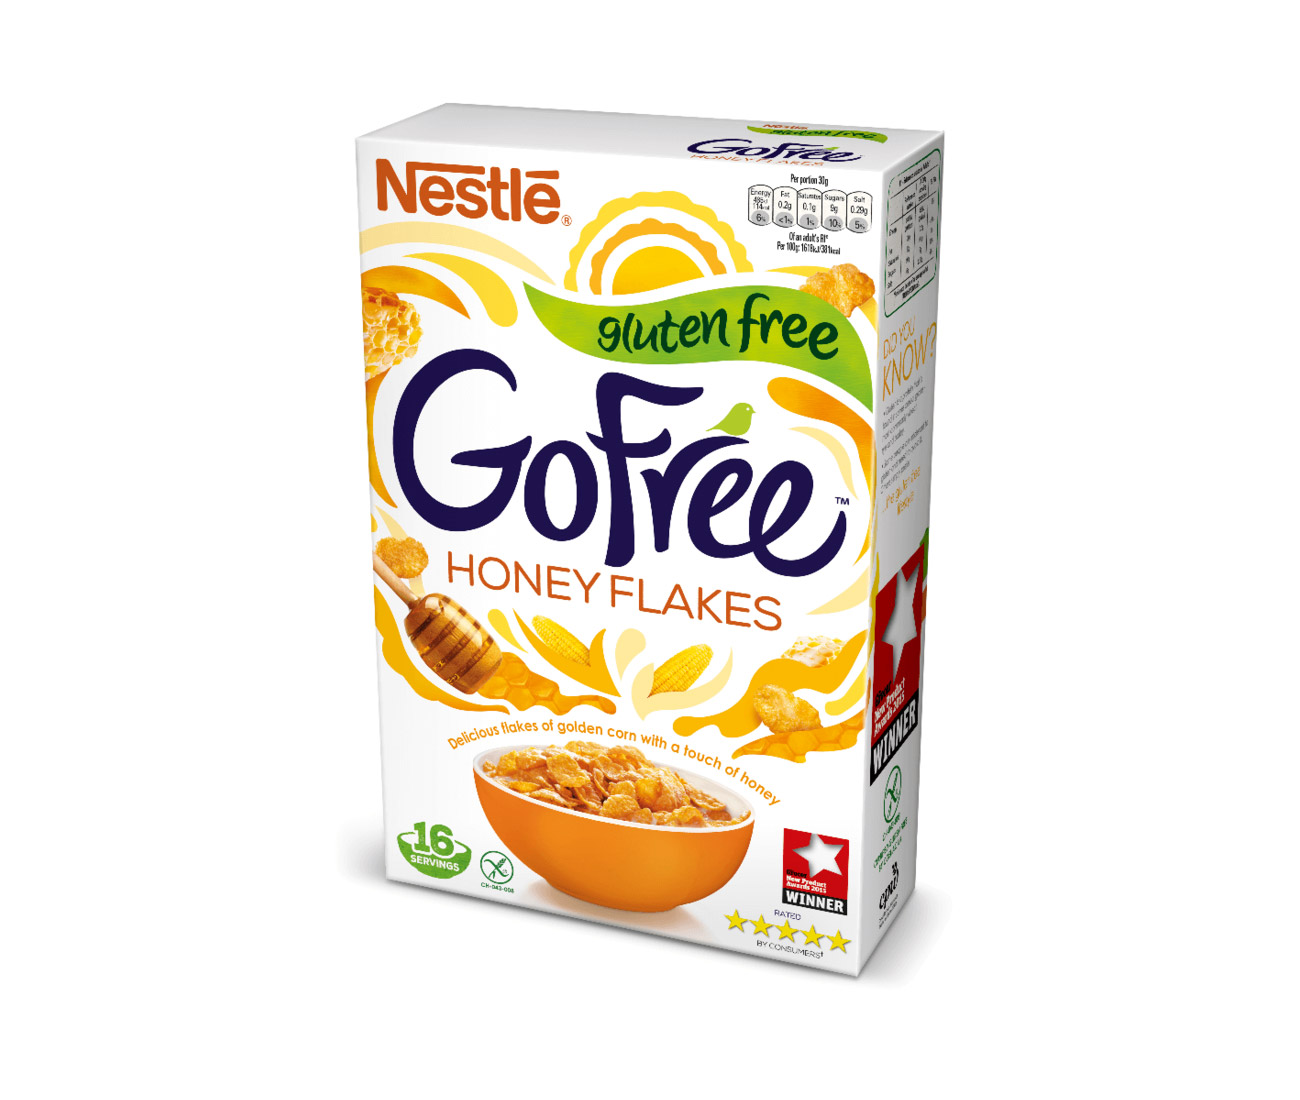 Get A Free Nestle Cornflakes Cereal!